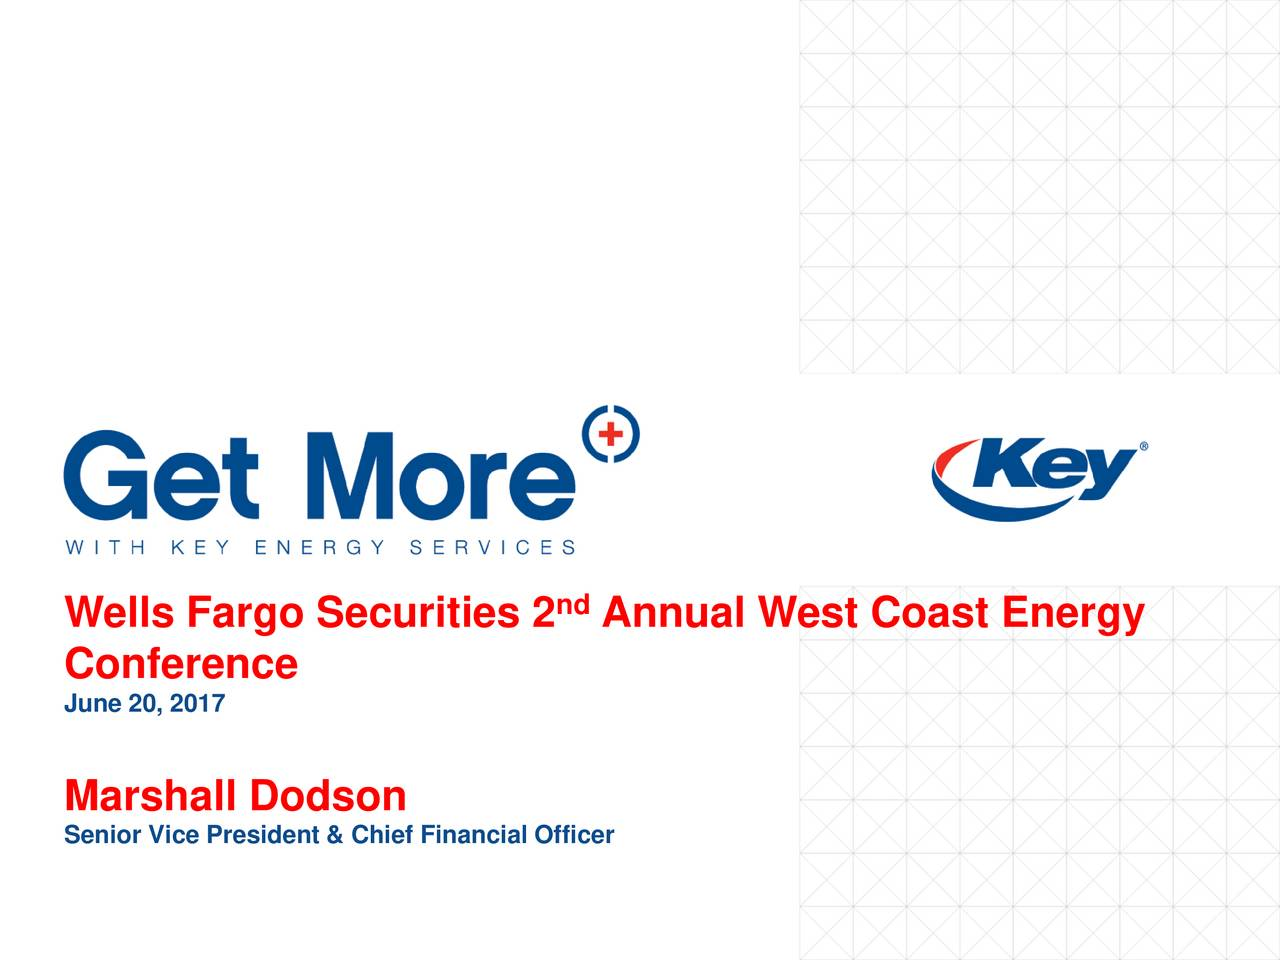 Wells Fargo Securities 2 Annual West Coast Energy Conference June 20, 2017 Marshall Dodson Senior Vice President & Chief Financial Officer